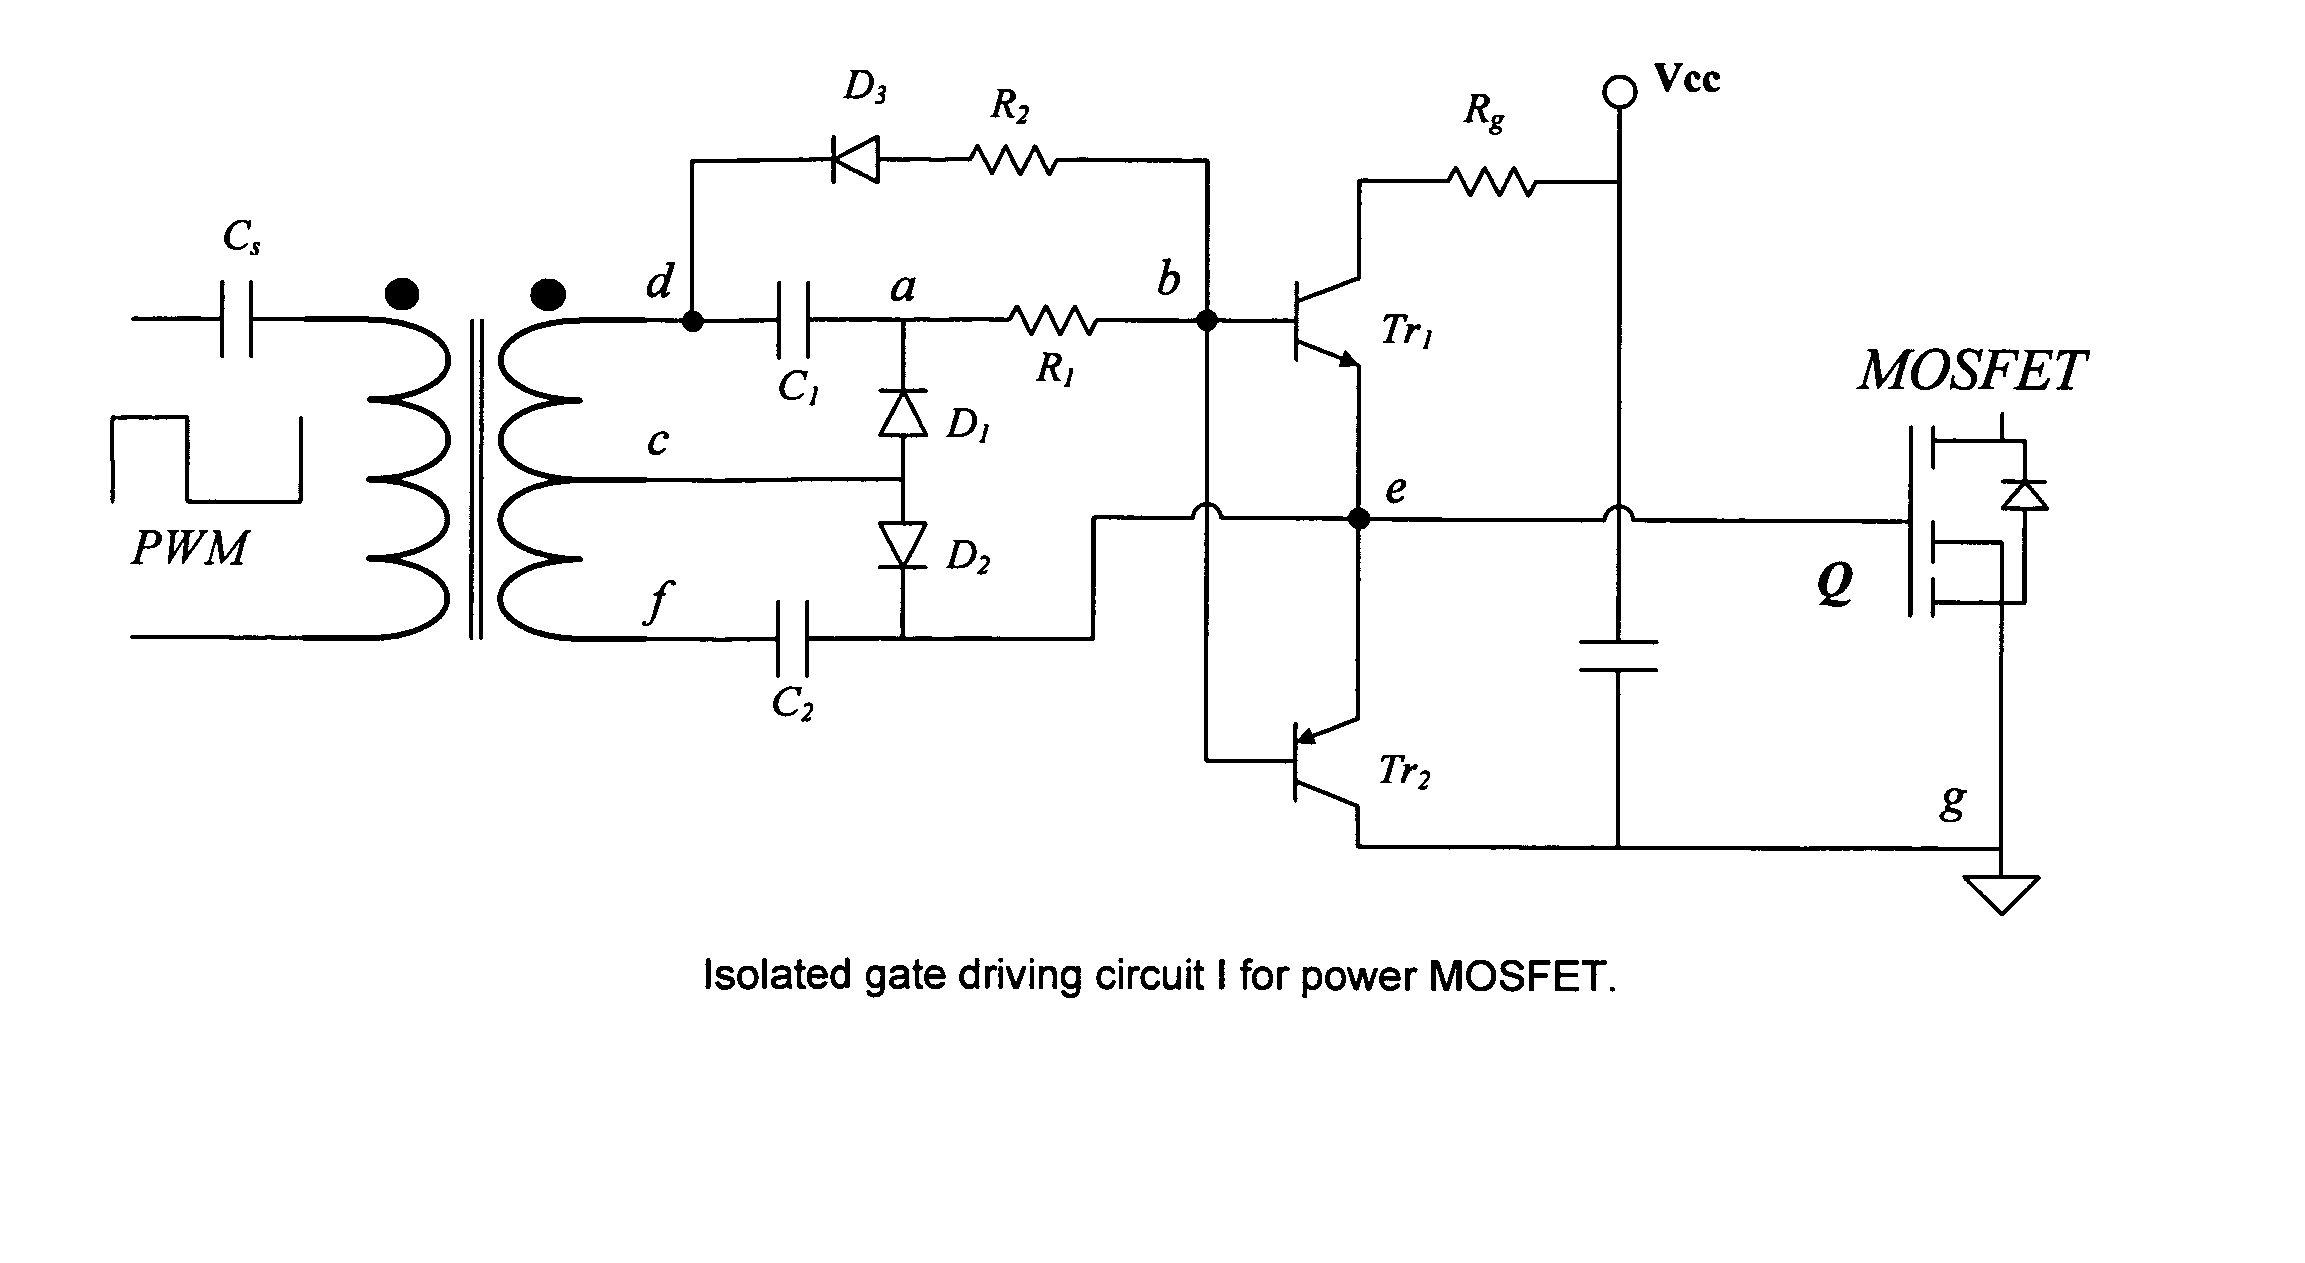 Mosfet Gate Drive Circuit Toshiba Great Installation Of Wiring Basics Patent Us7236041 Isolated Driver For Power Switching Rh Google Com Pg Rf